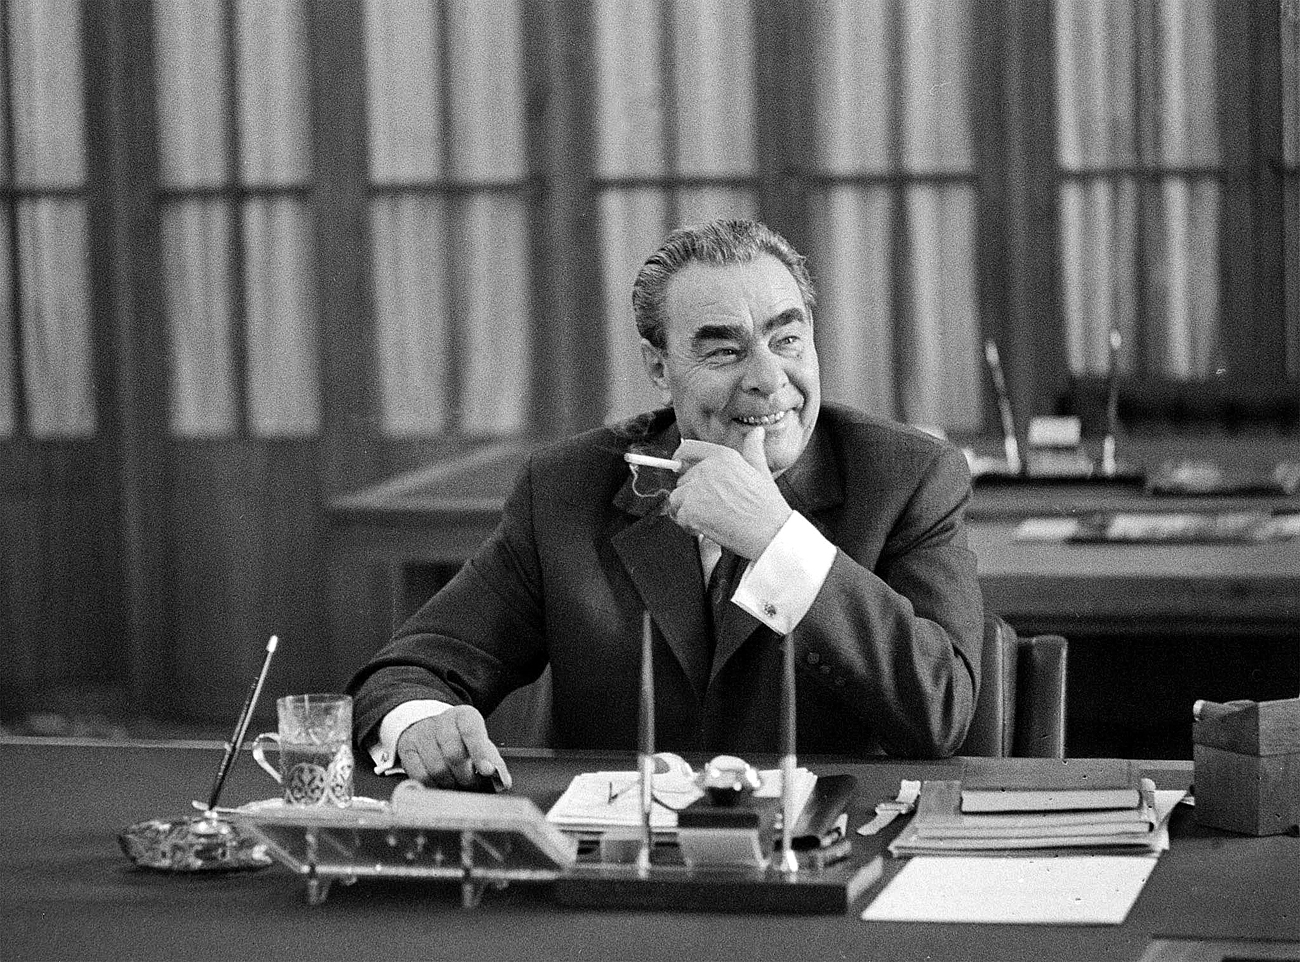 Leonid Brezhnev as statesman and performer